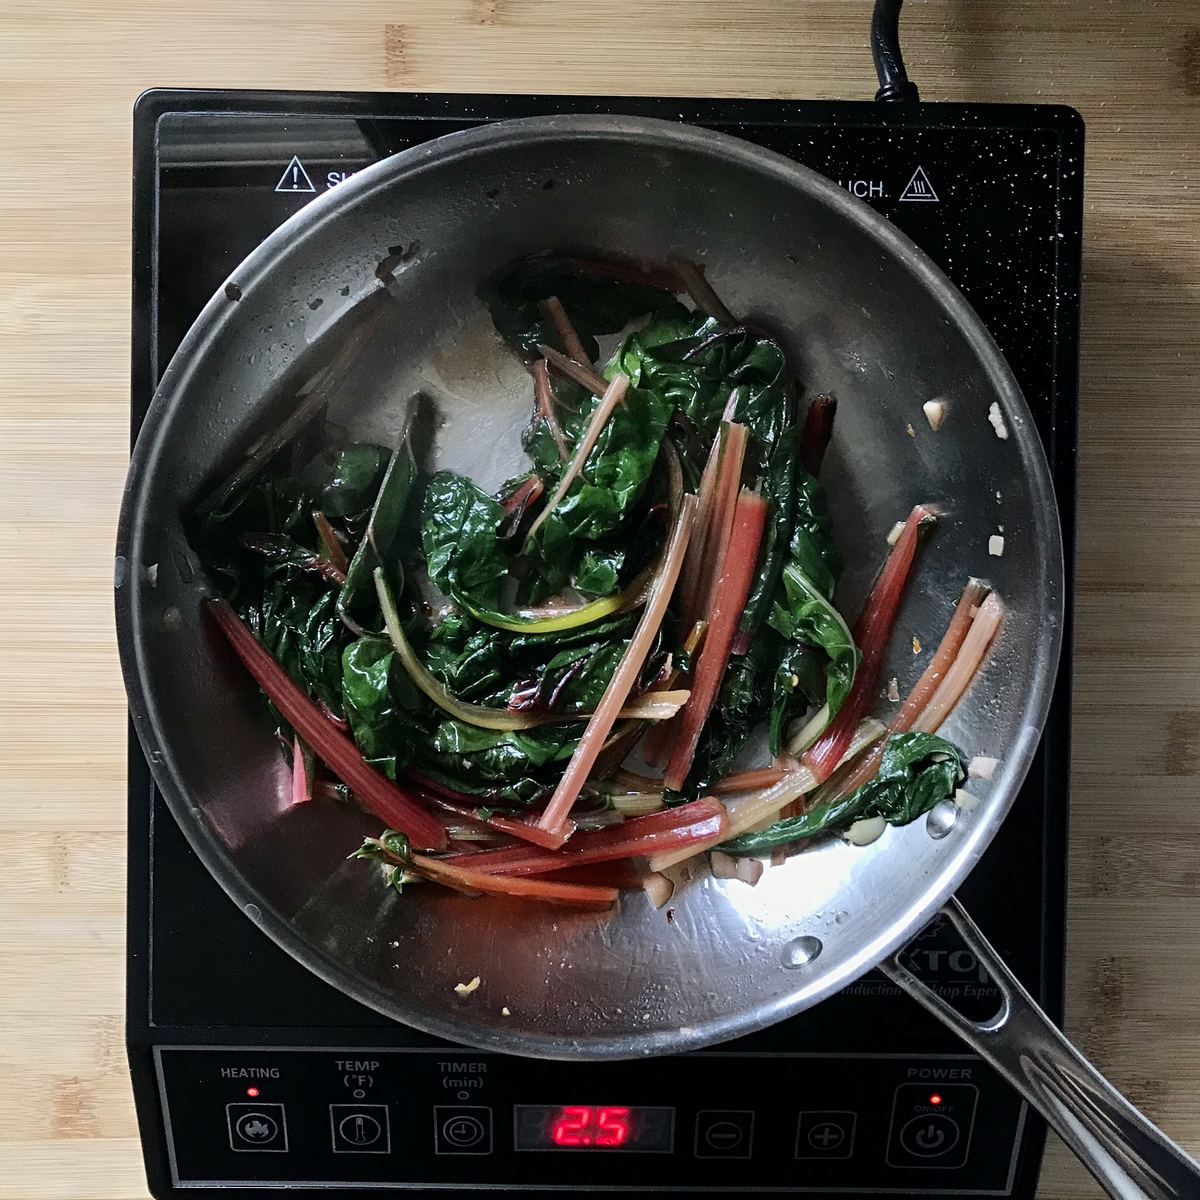 Par-boiled Swiss and rainbow chard added to a pan of sauteed garlic.